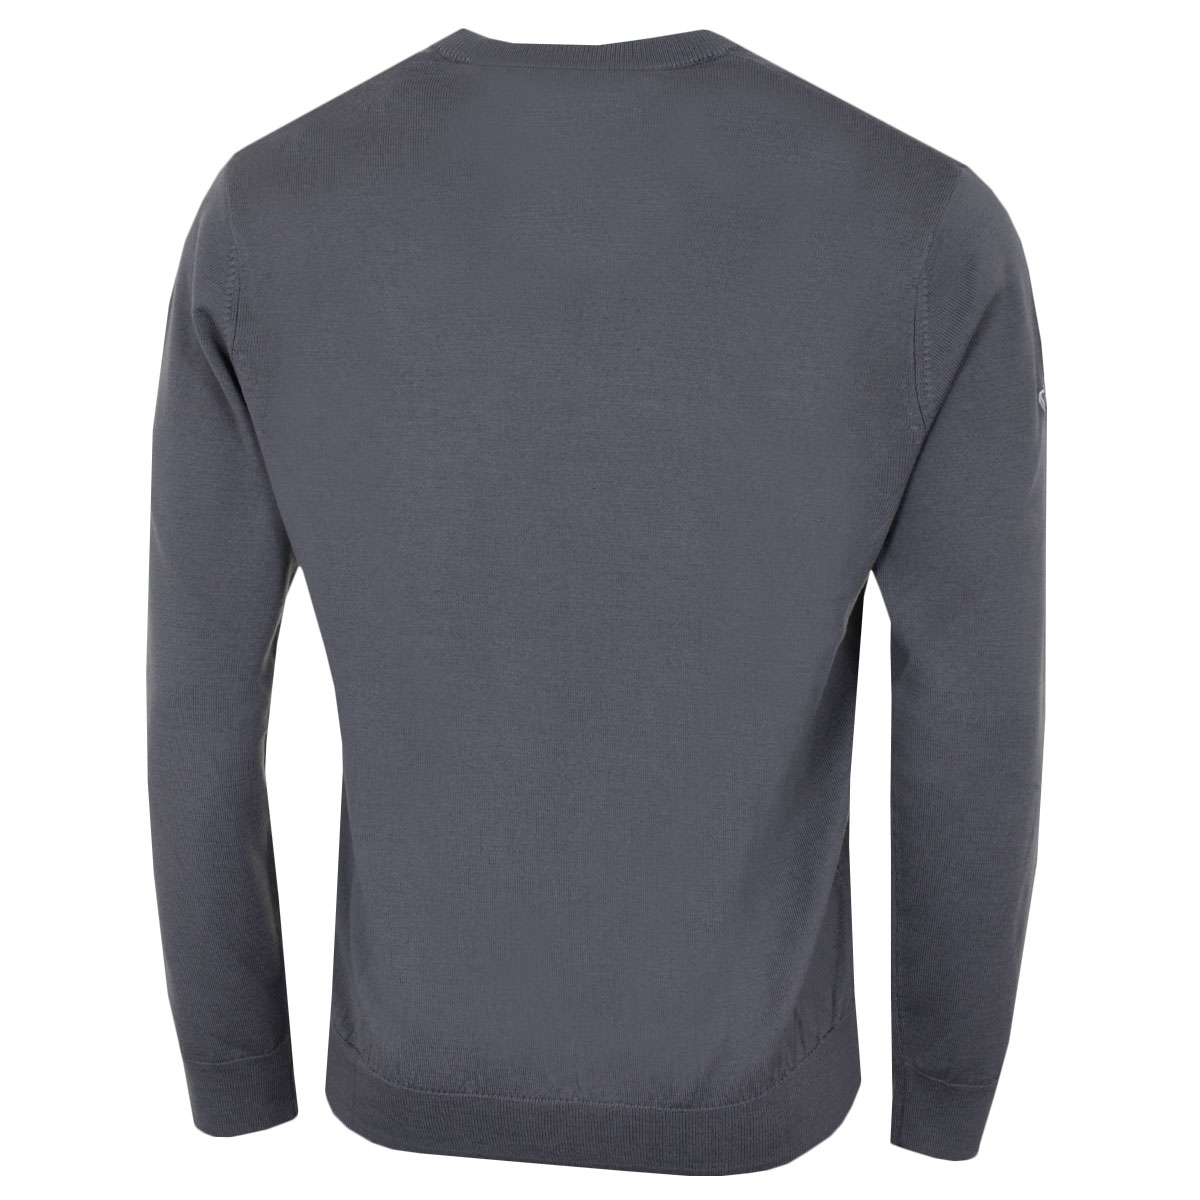 Callaway-Golf-Mens-Ribbed-V-Neck-Merino-Opti-Therm-Sweater-Jumper-64-OFF-RRP thumbnail 12